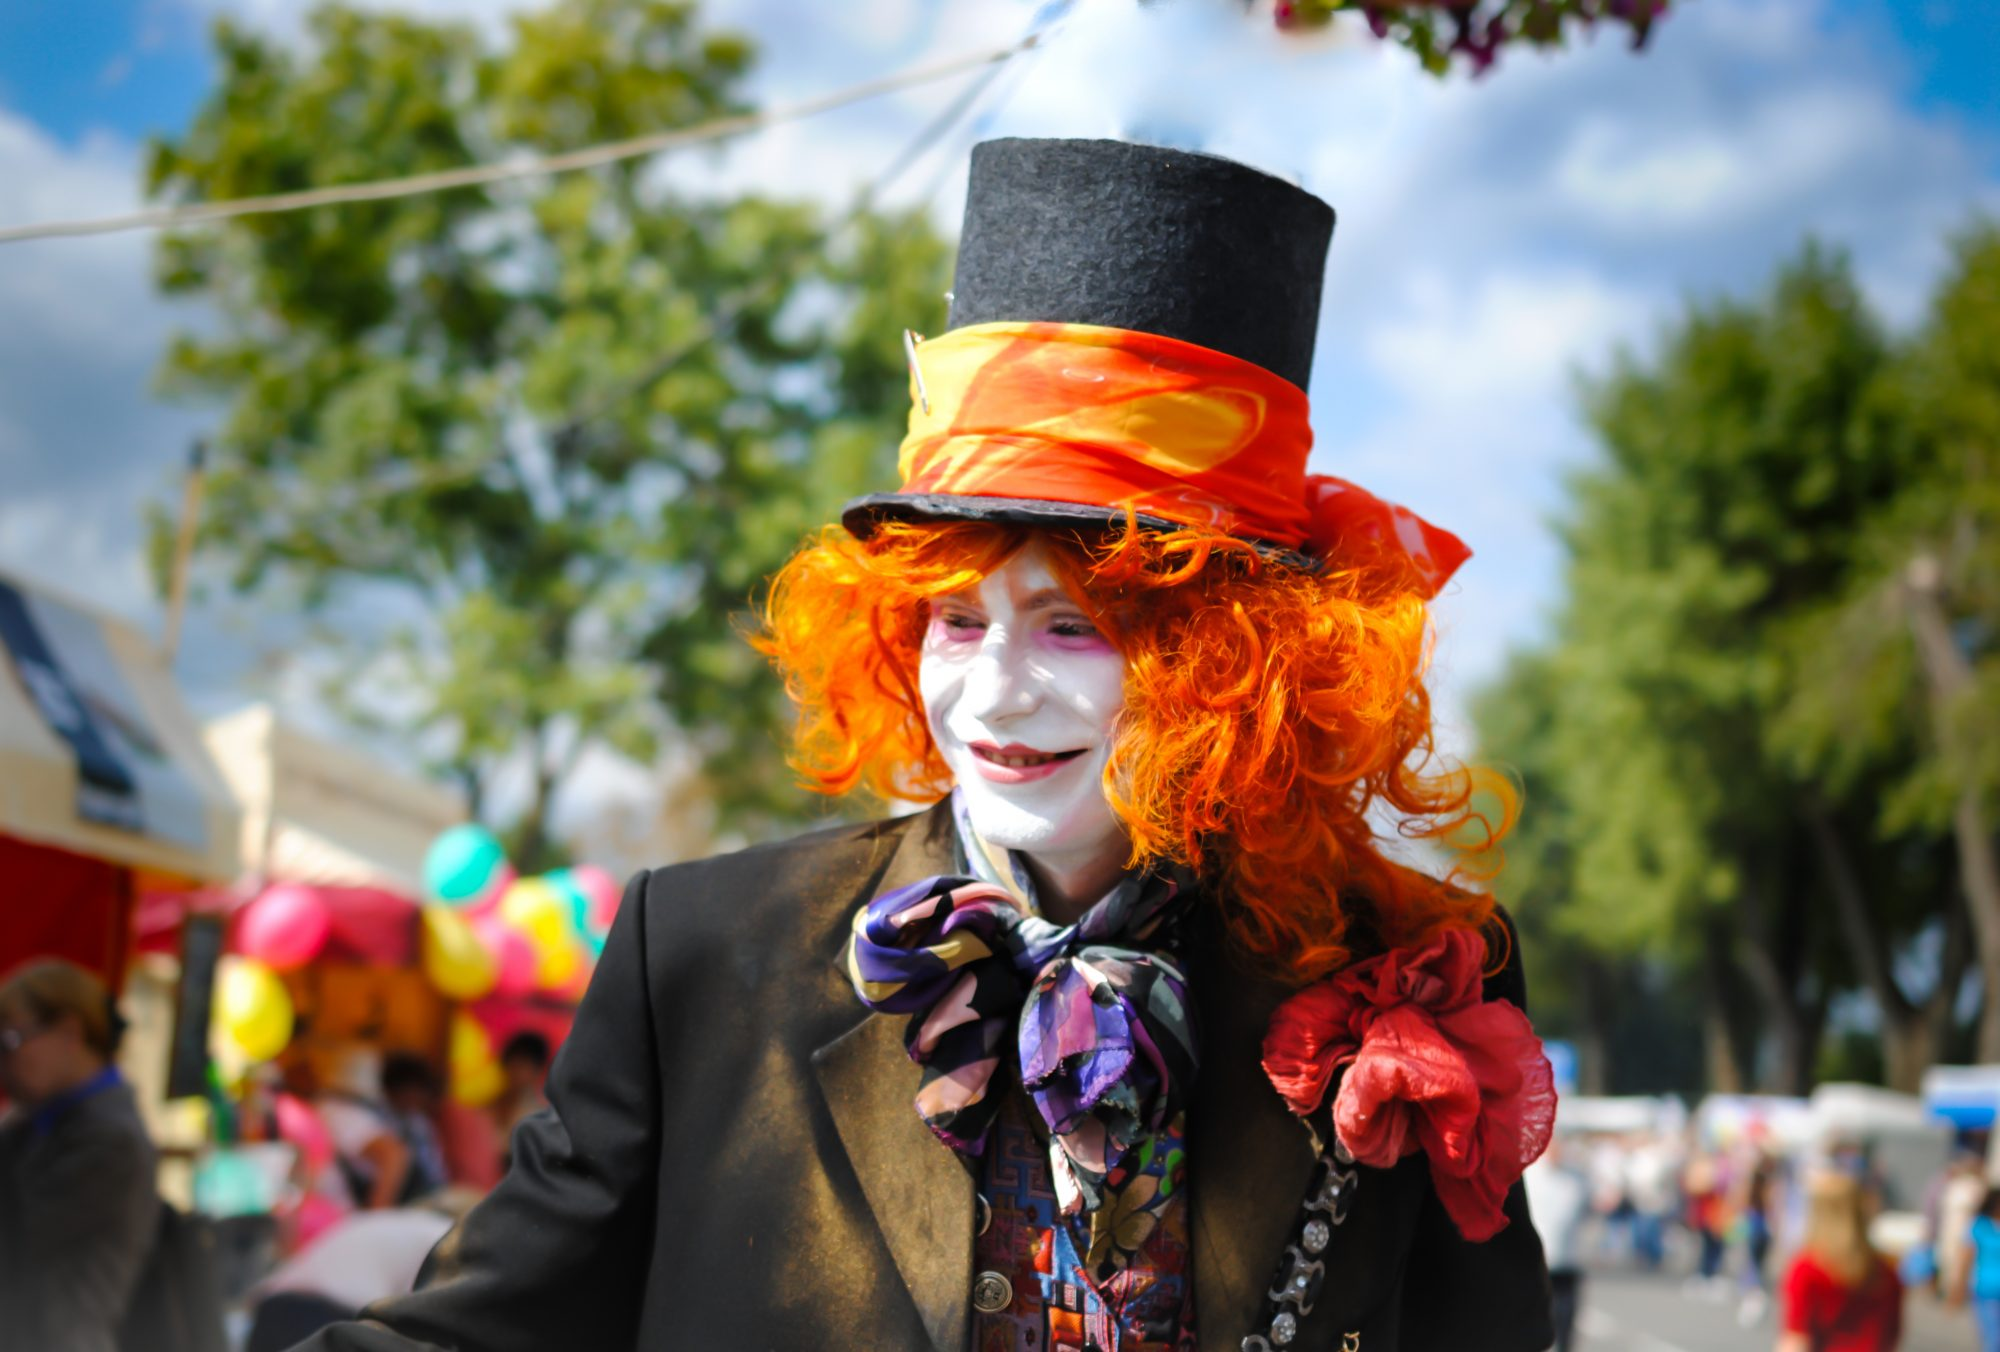 five rare diseases, Alice in Wonderland Syndrome